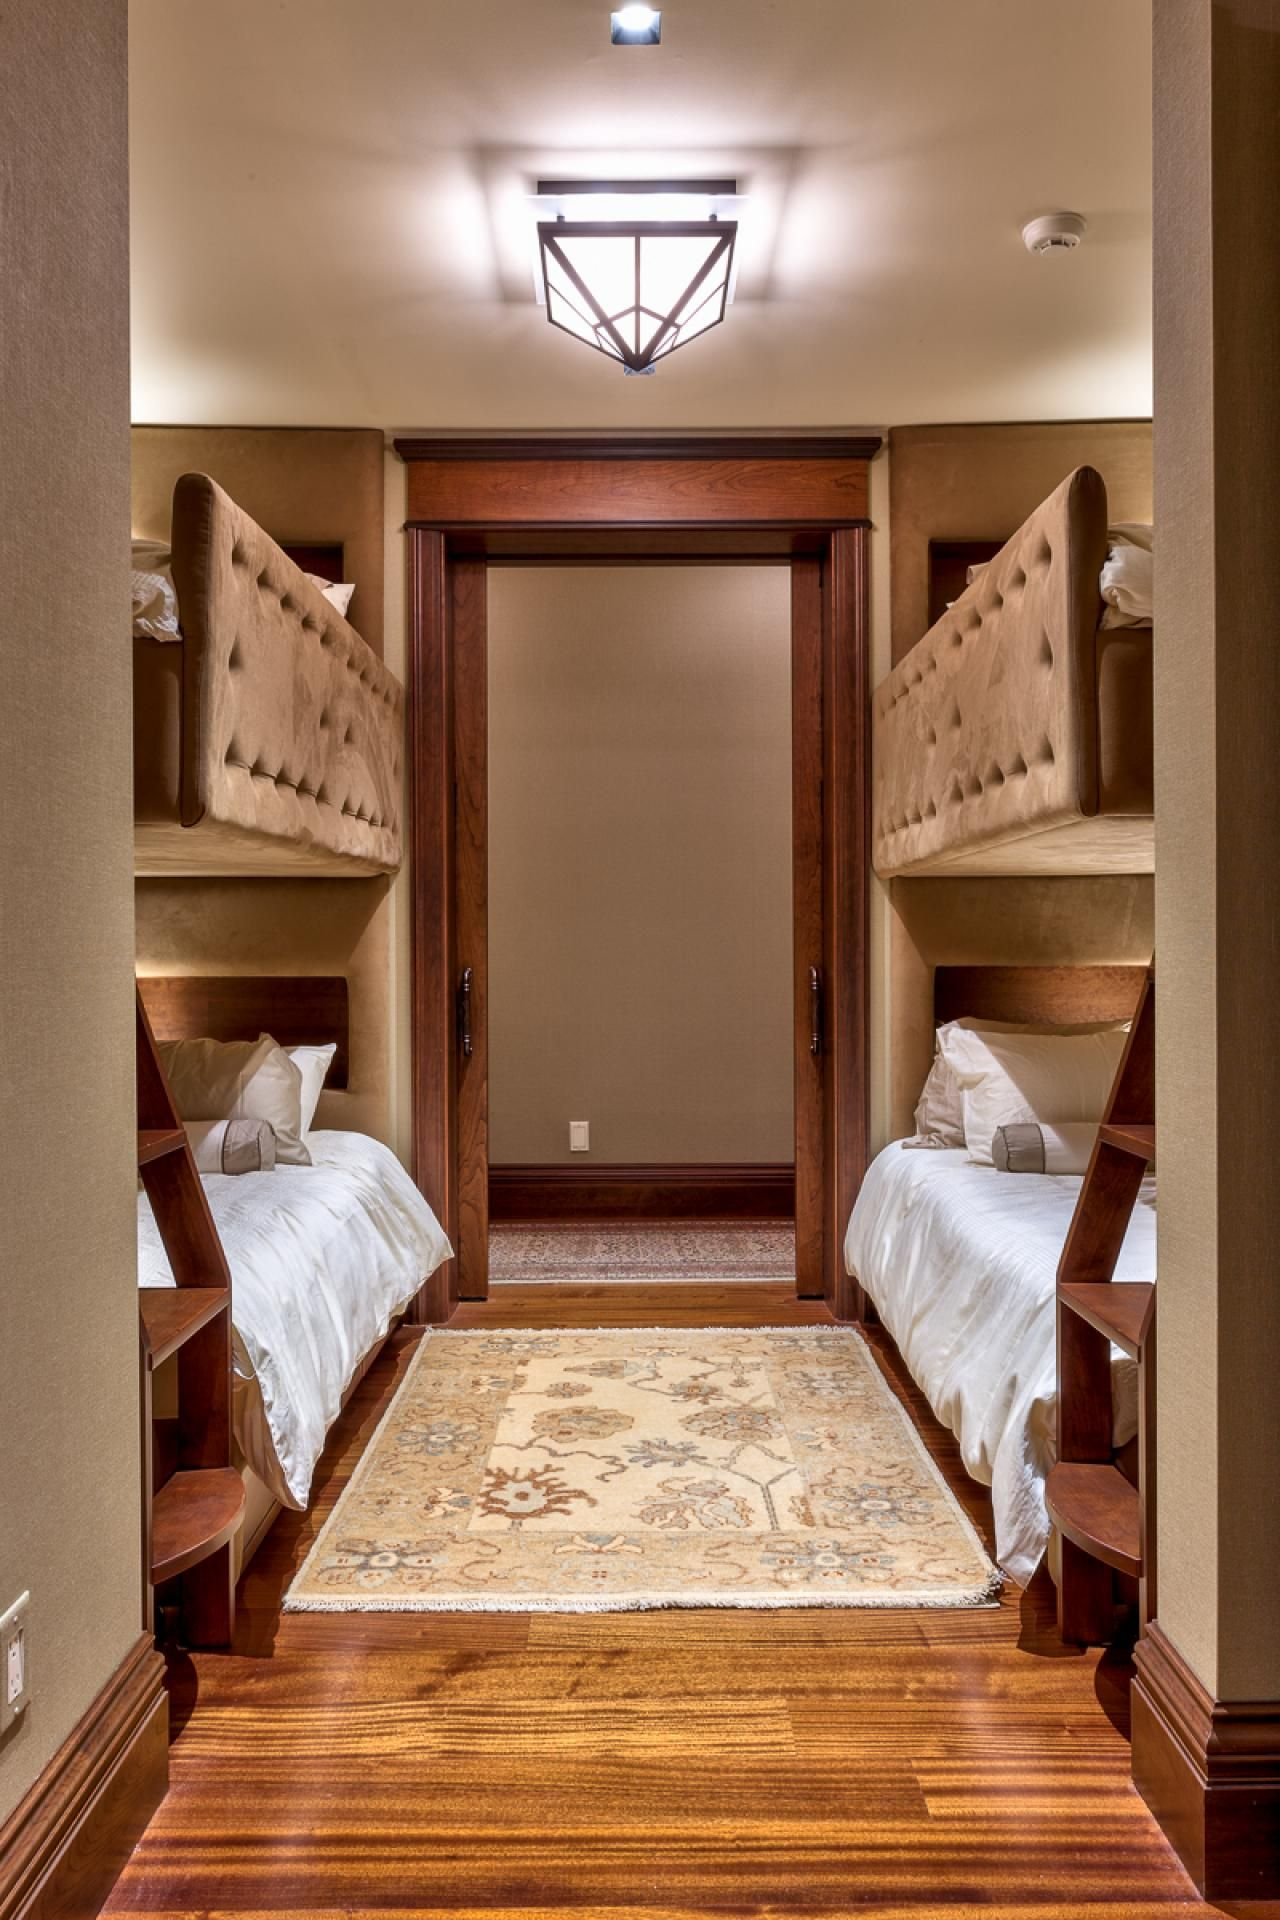 Bunk Bed Bedroom Ideas This Guest Room Features Two Bunk Beds That Provide Plenty